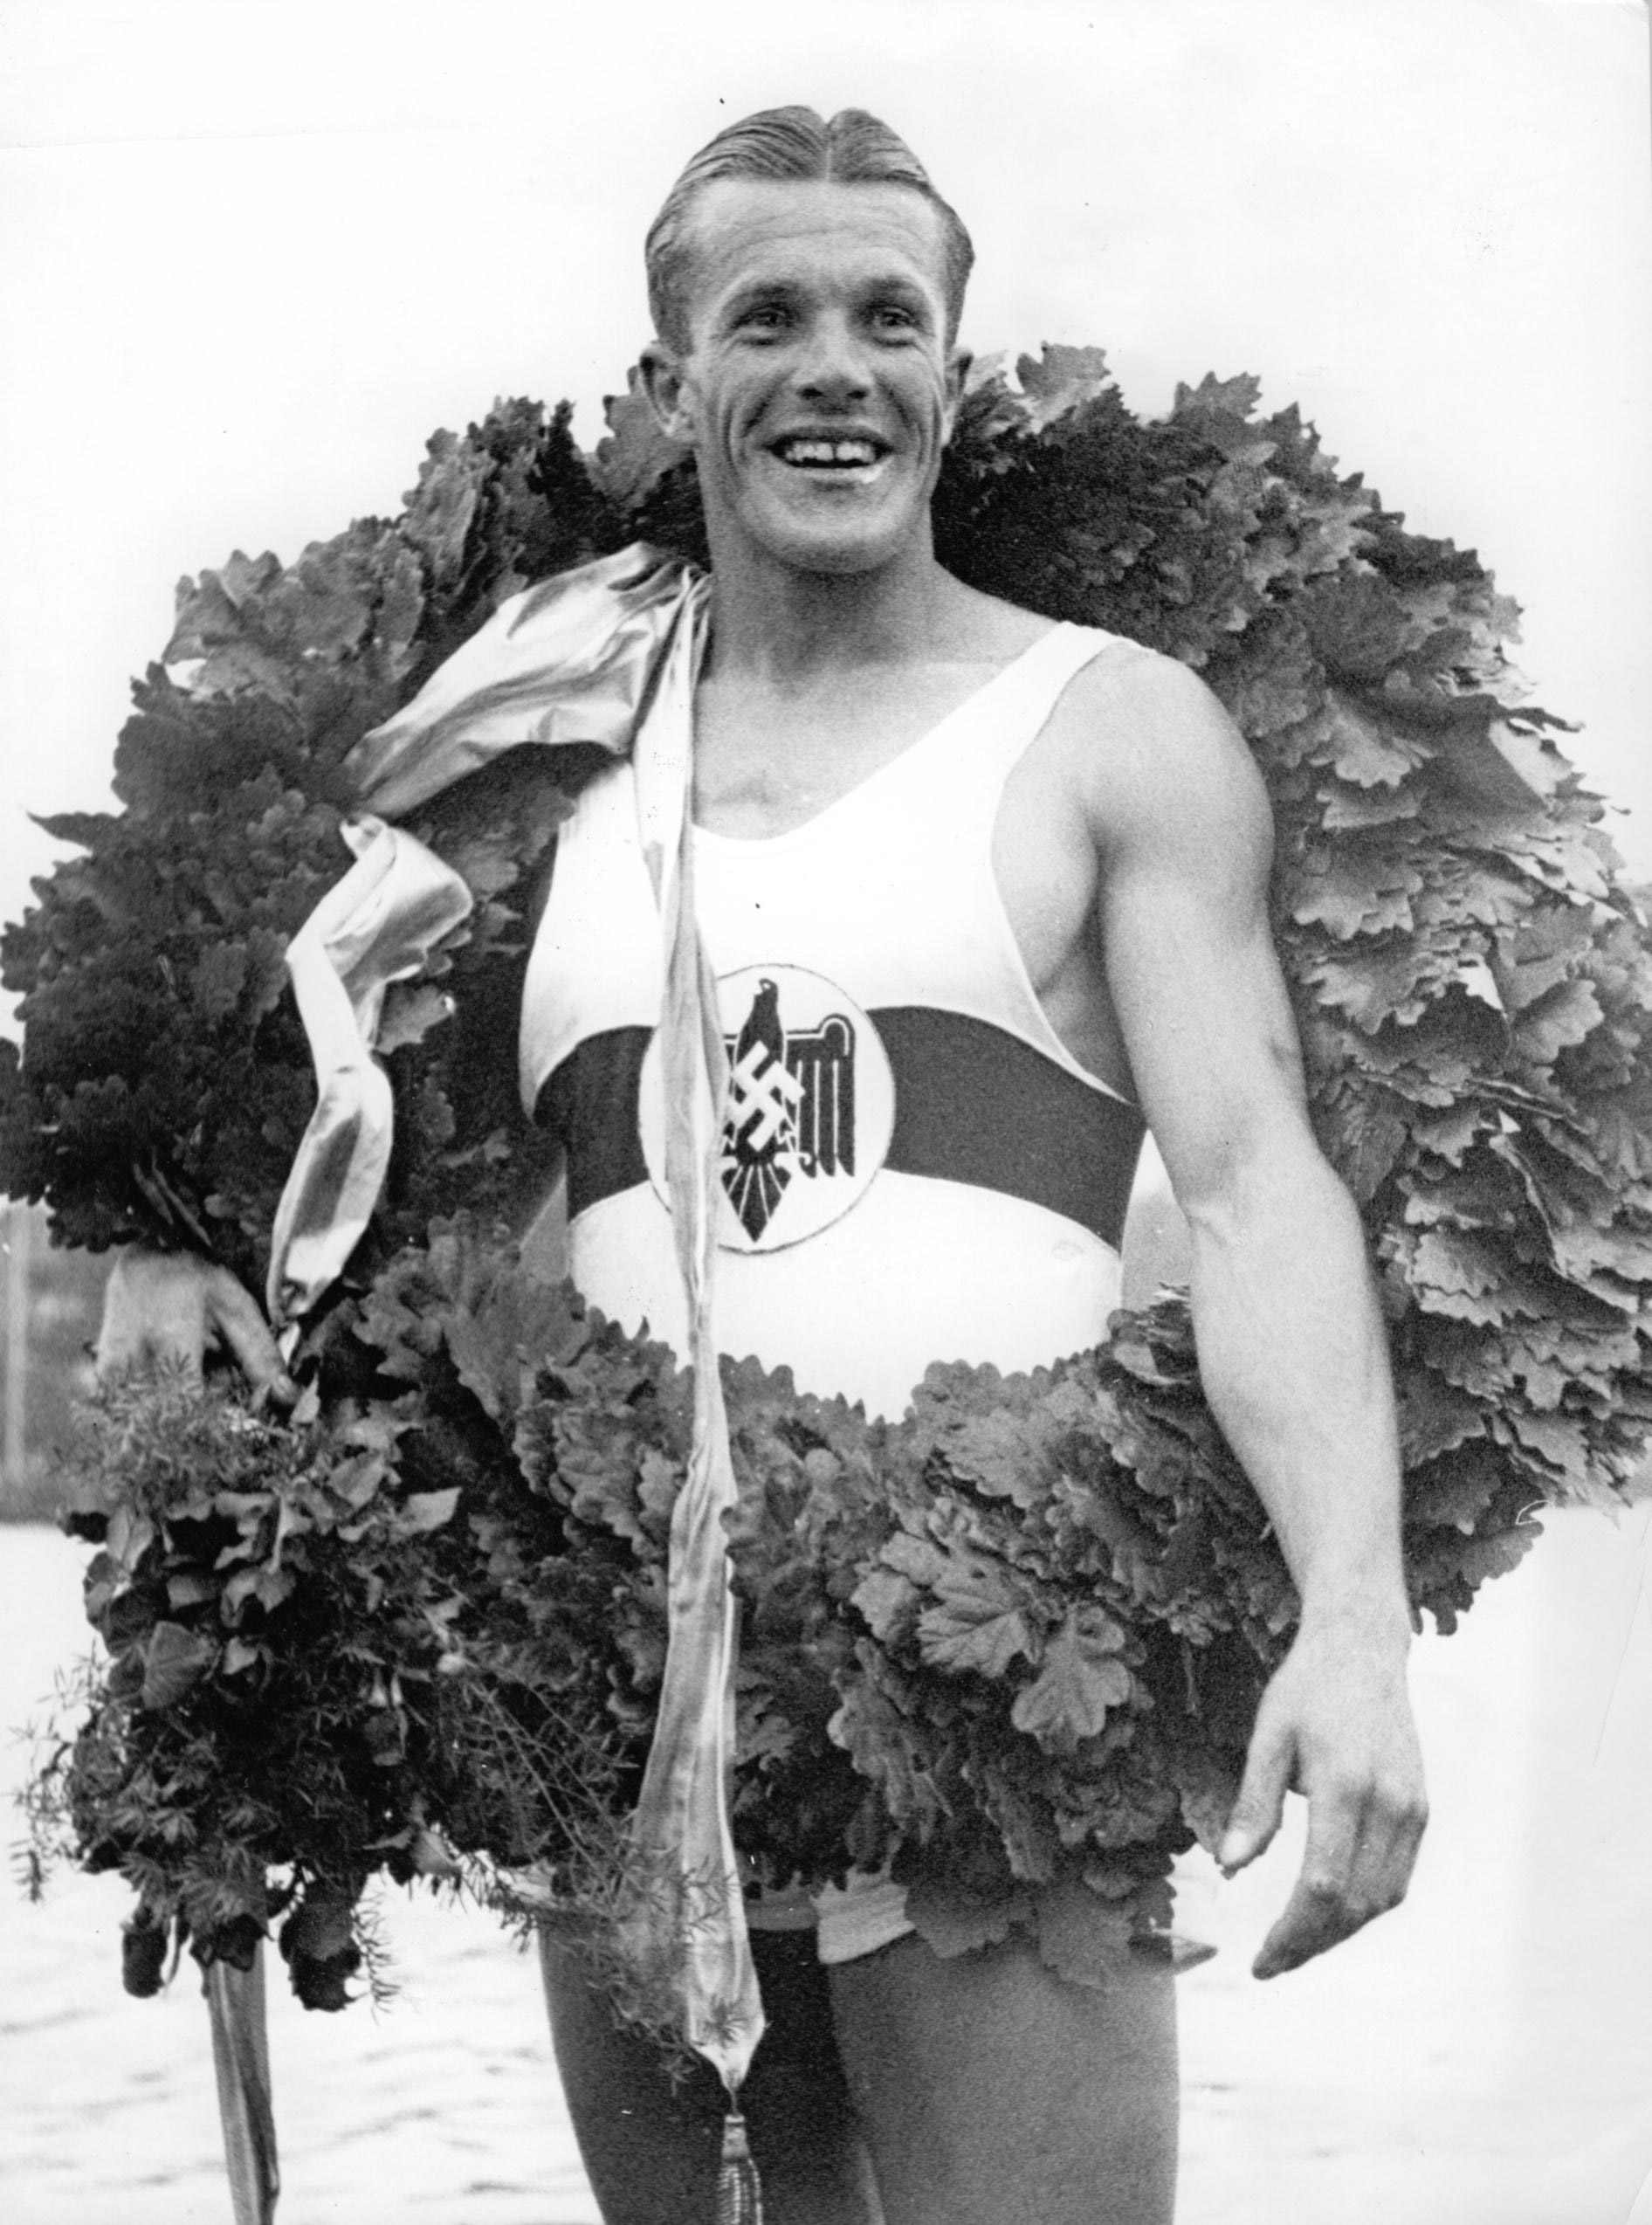 Olympic winner Gustav 'Gummi' Schaefer, German rower, with the laurel wreath during the Summer Olympics in Berlin-Grünau in August 1936.